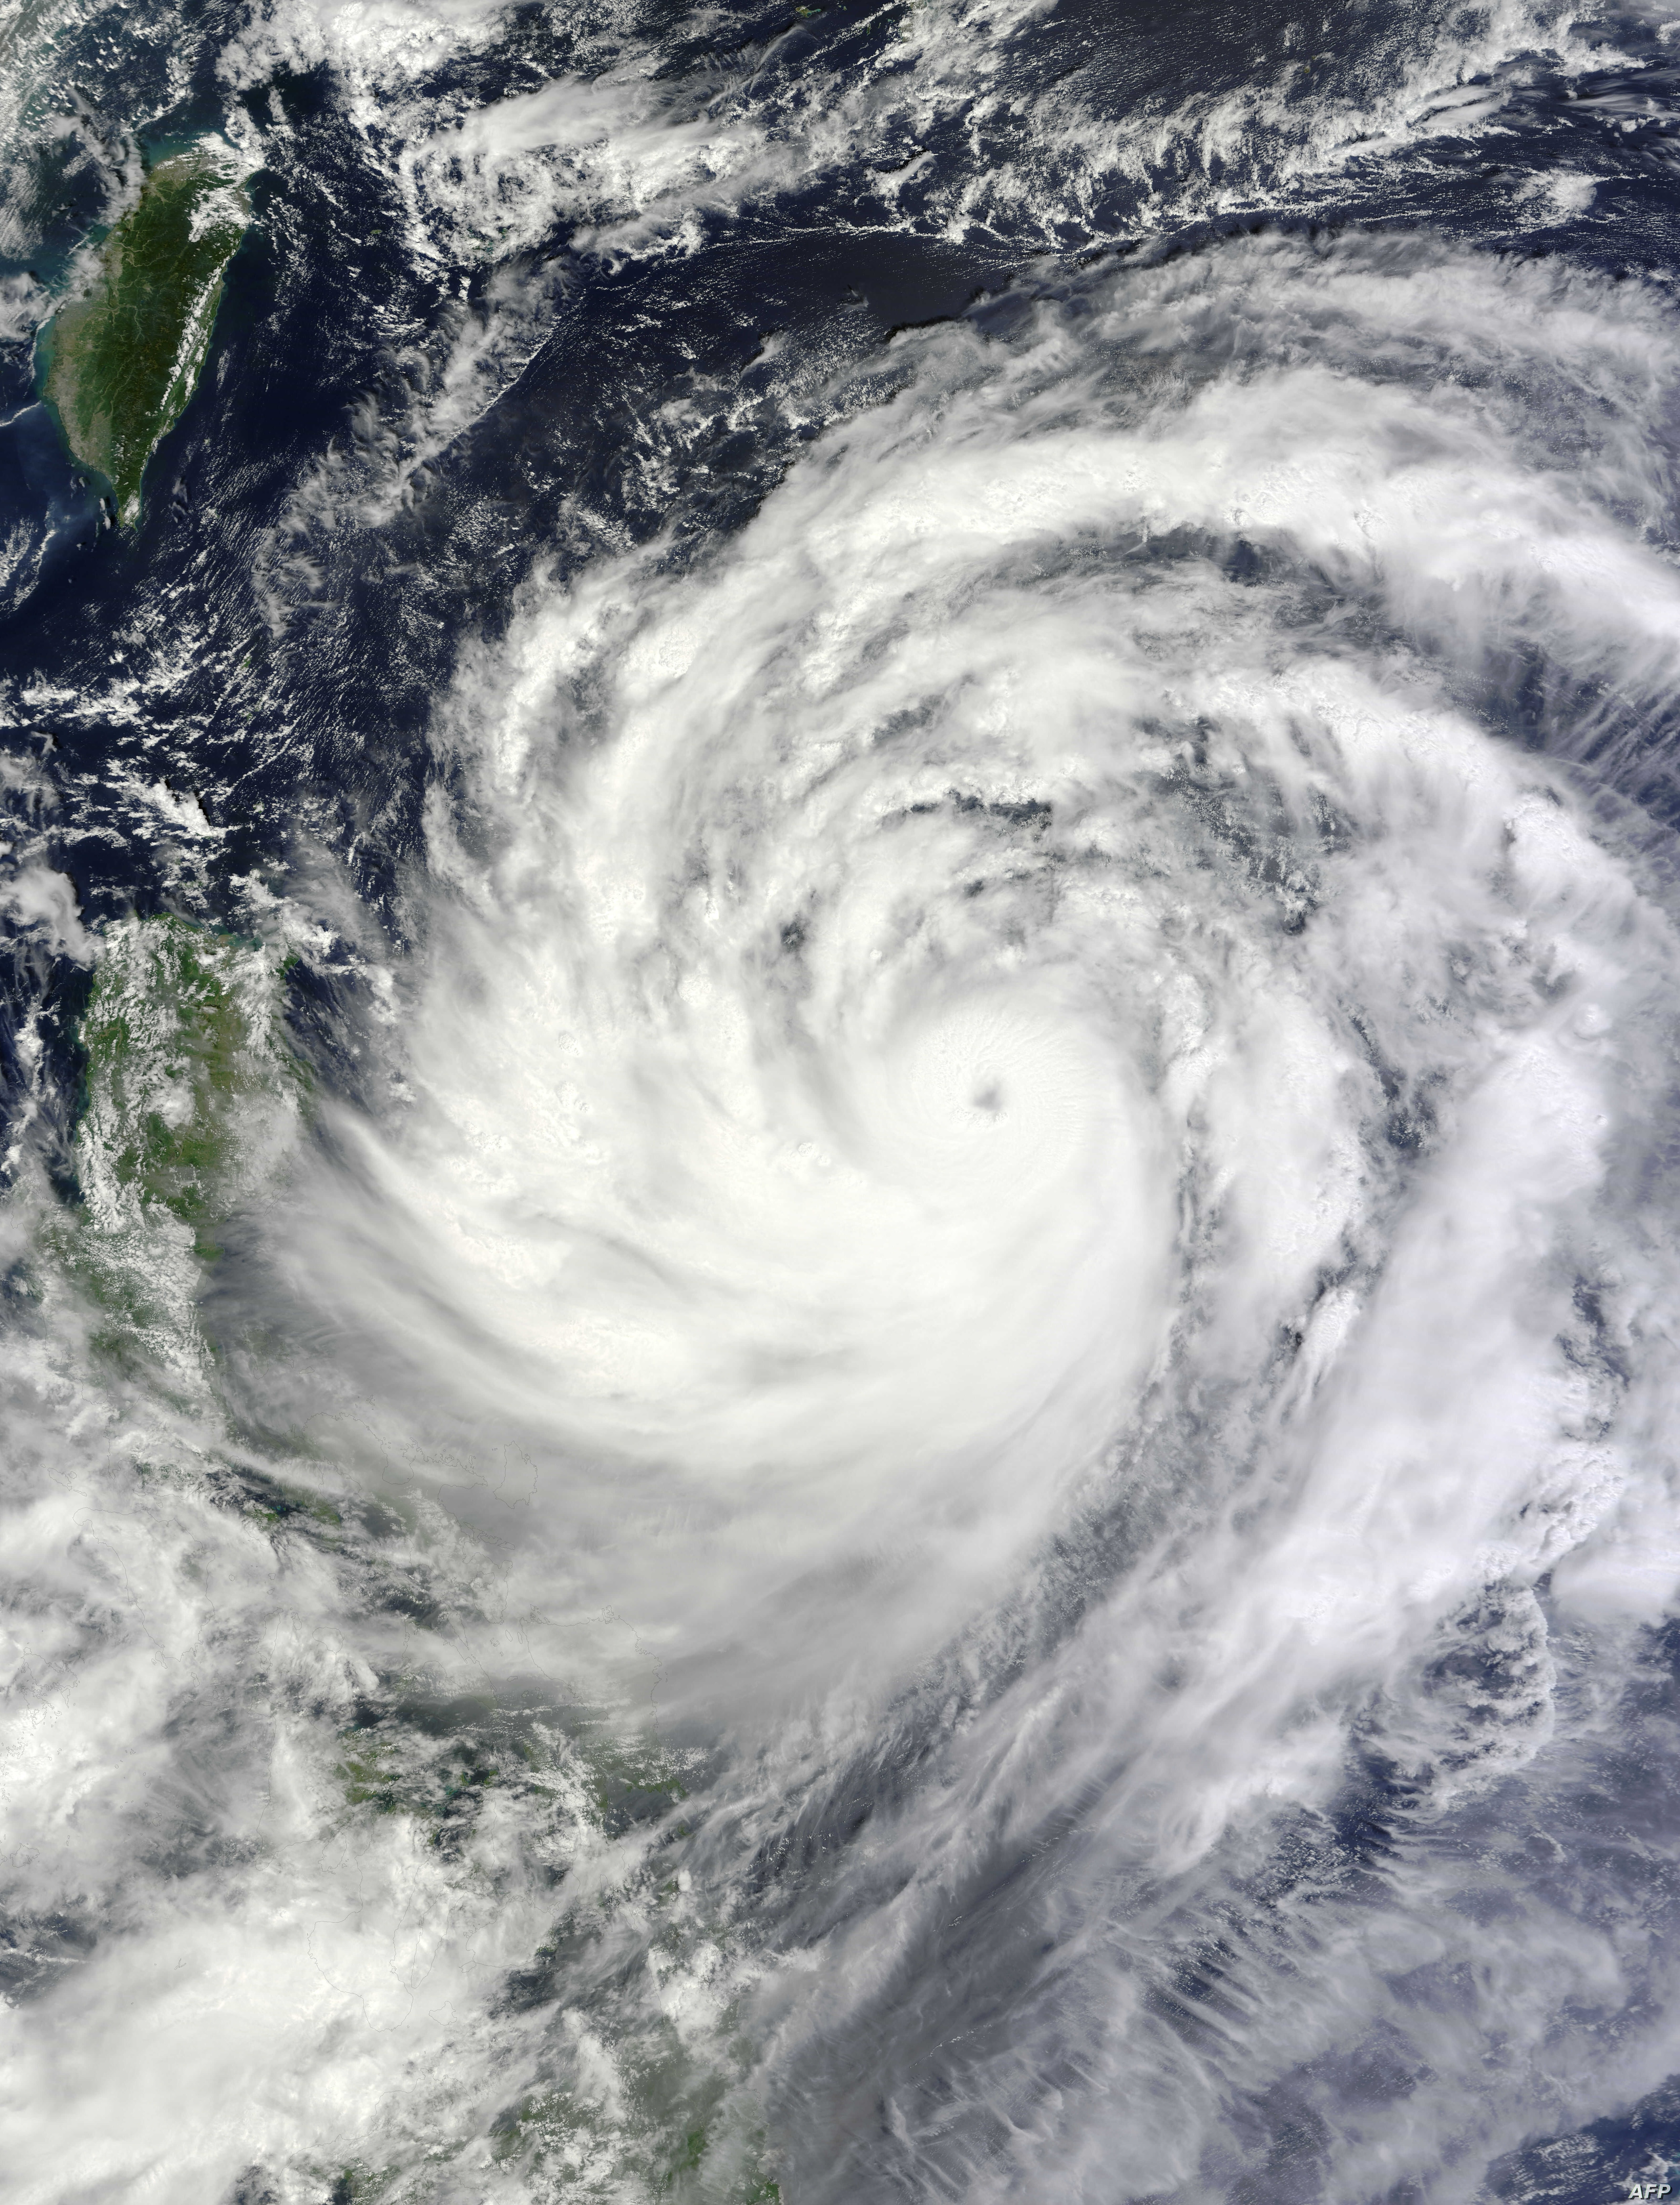 This NASA Terra satellite image obtained September 19, 2013 shows Typhoon Usagi nearing the Philippines and southern Taiwan. Taiwan's Central Weather Bureau said September 19, that Typhoon Usagi was about 900 kilometers (560 miles) southeast of Taiwa